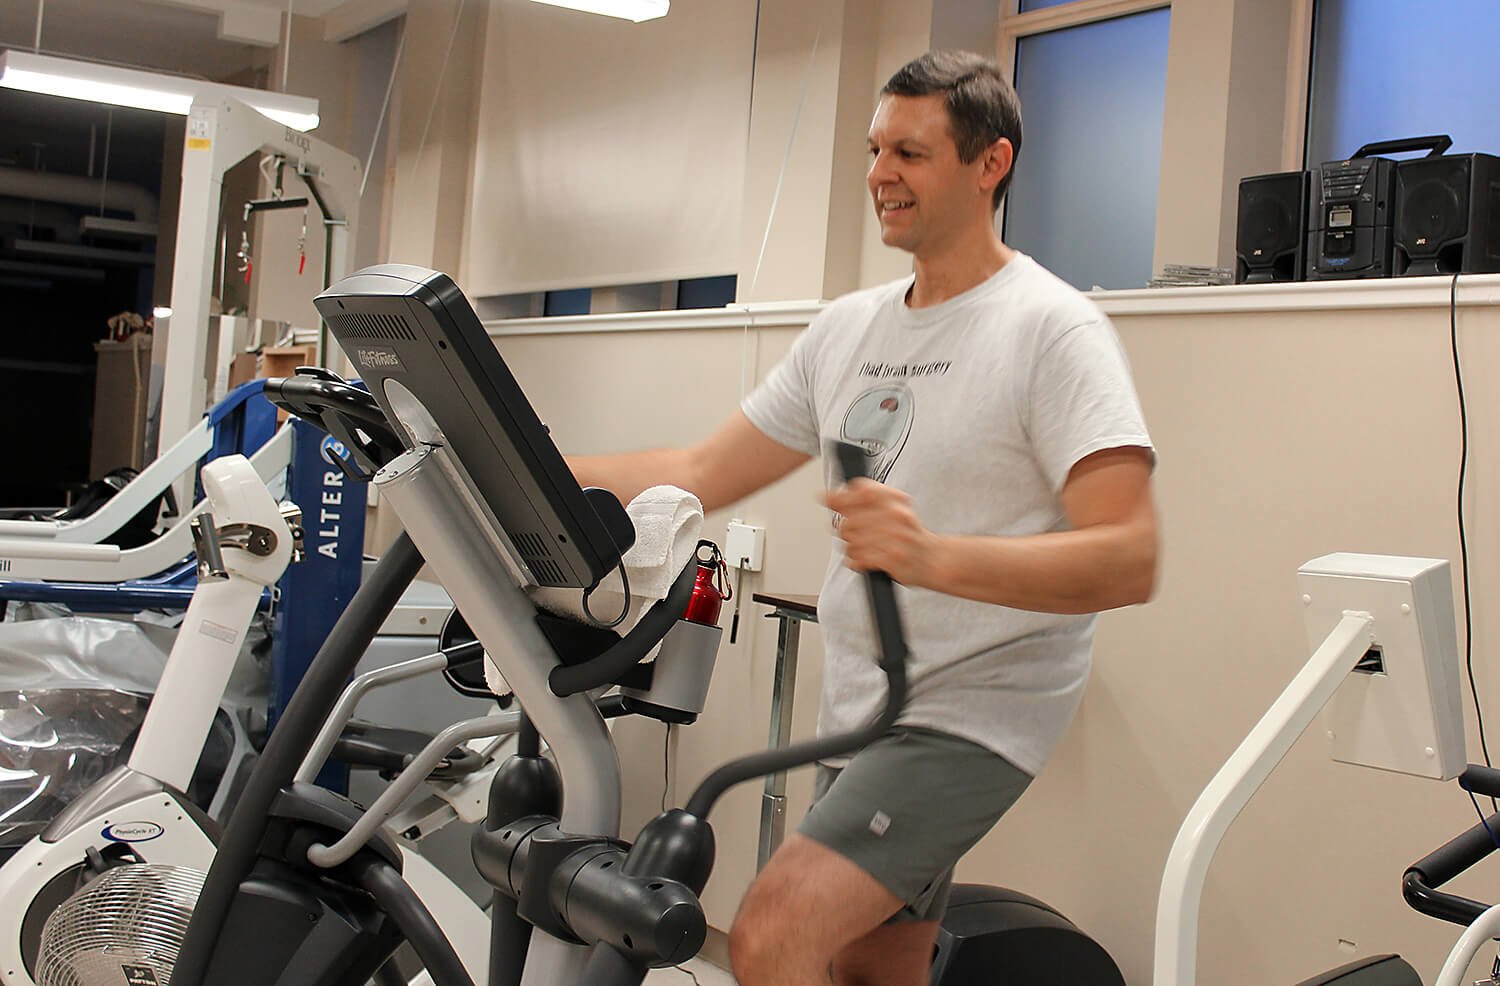 Cancer survivor, James, working out in a gym after surgery.